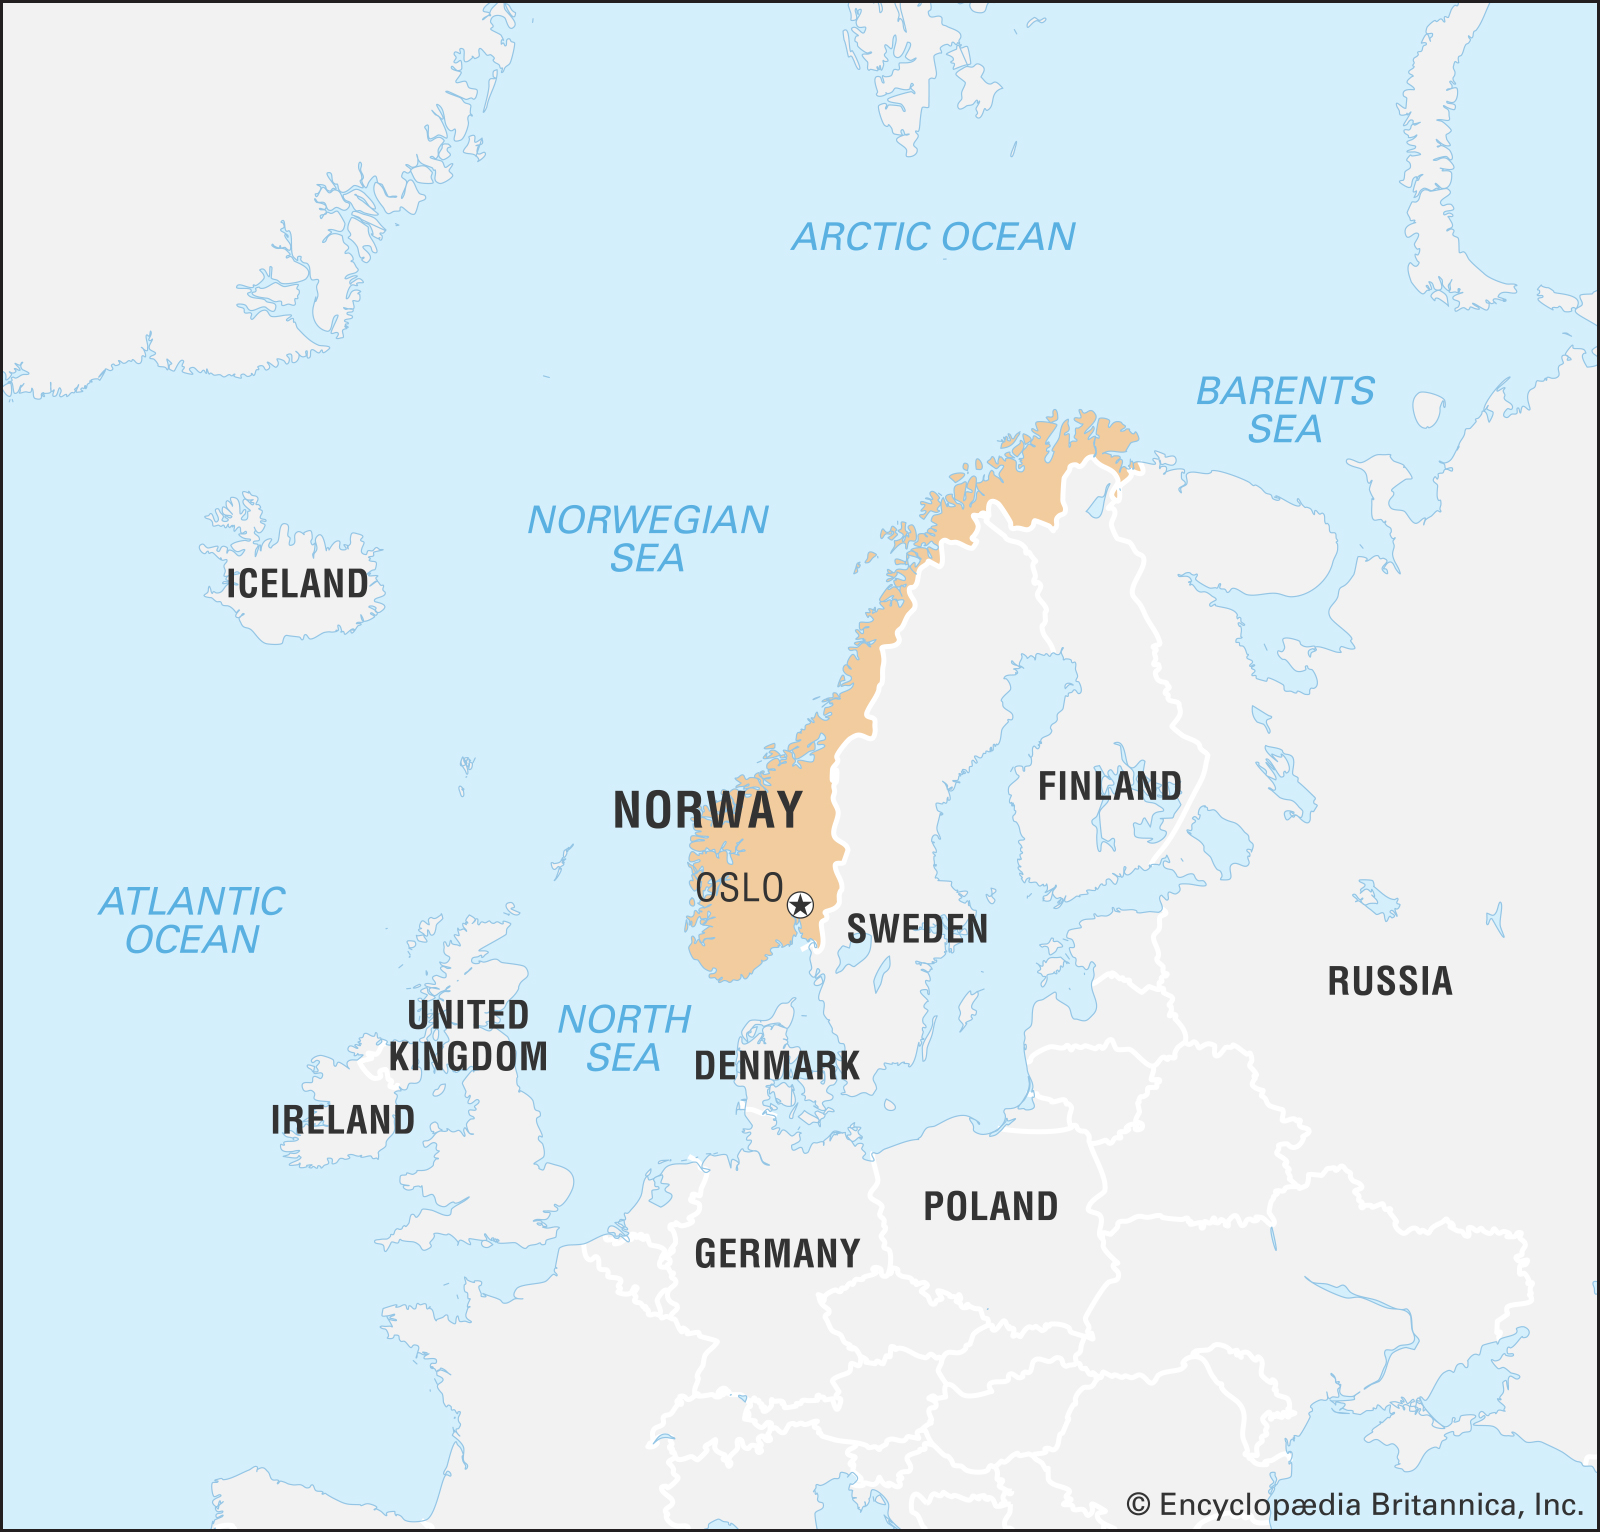 A map of Norway and nearby countries